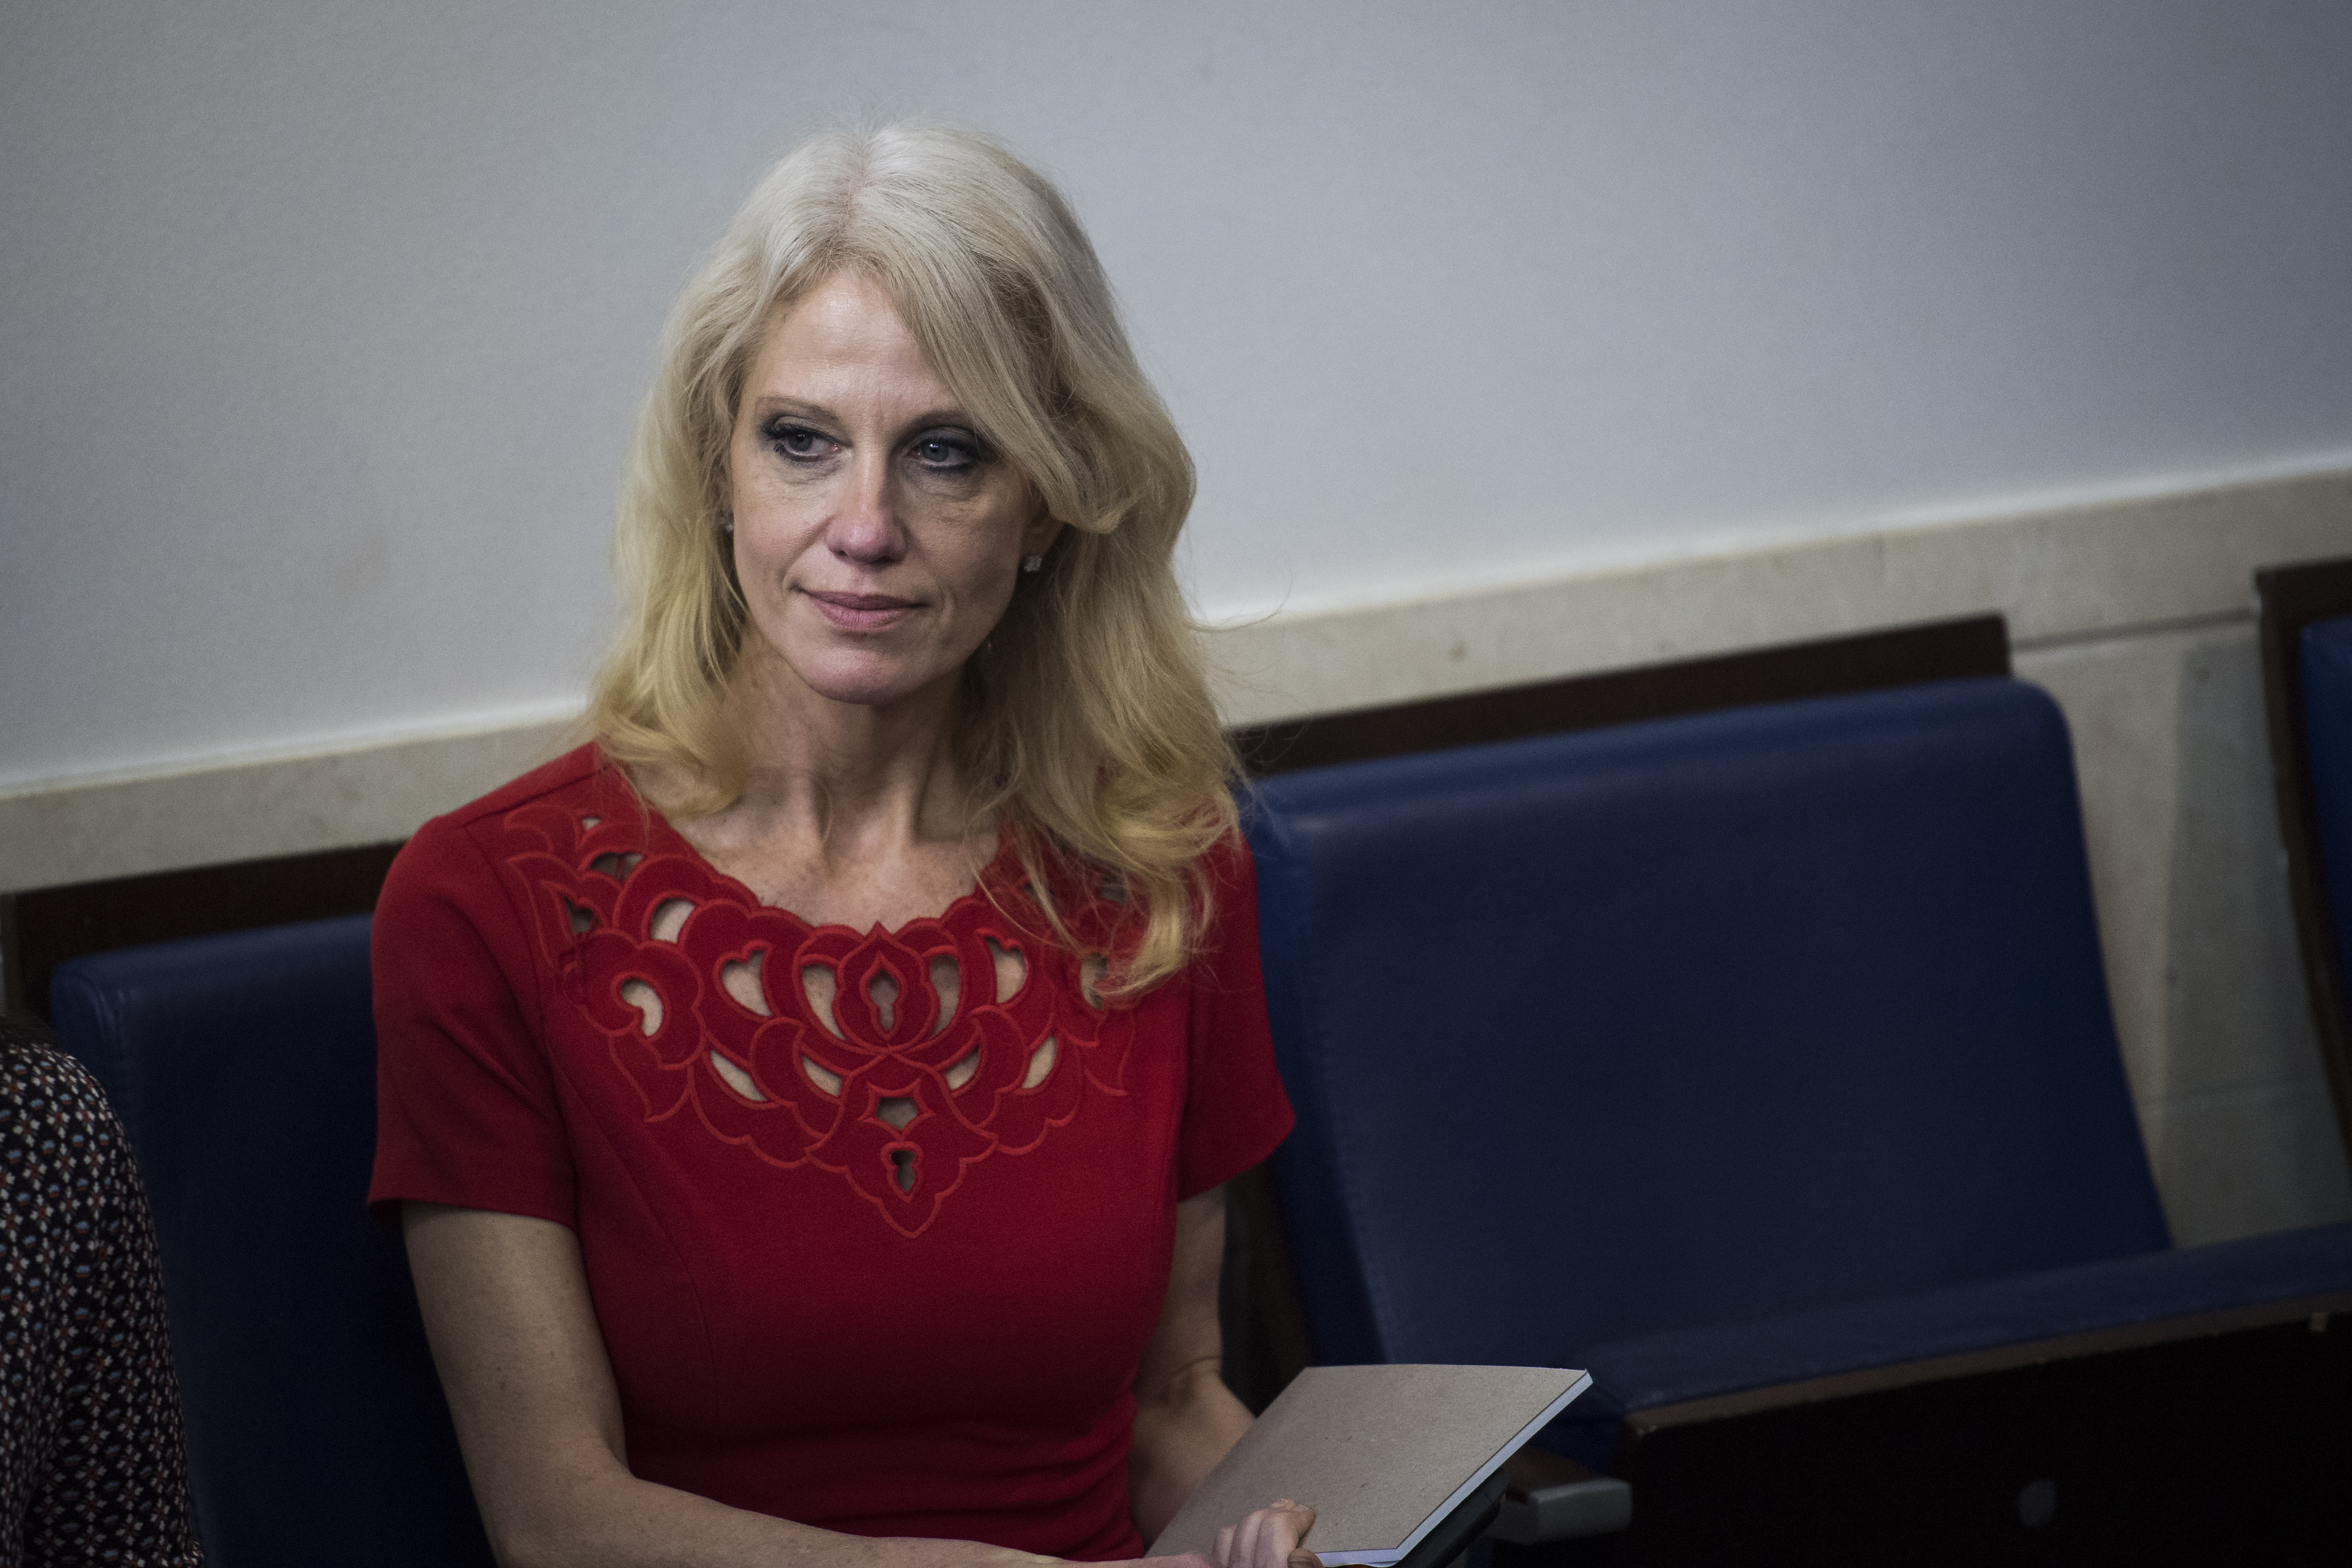 The White House defended Kellyanne Conway by saying its employees don't have to follow ethics rules